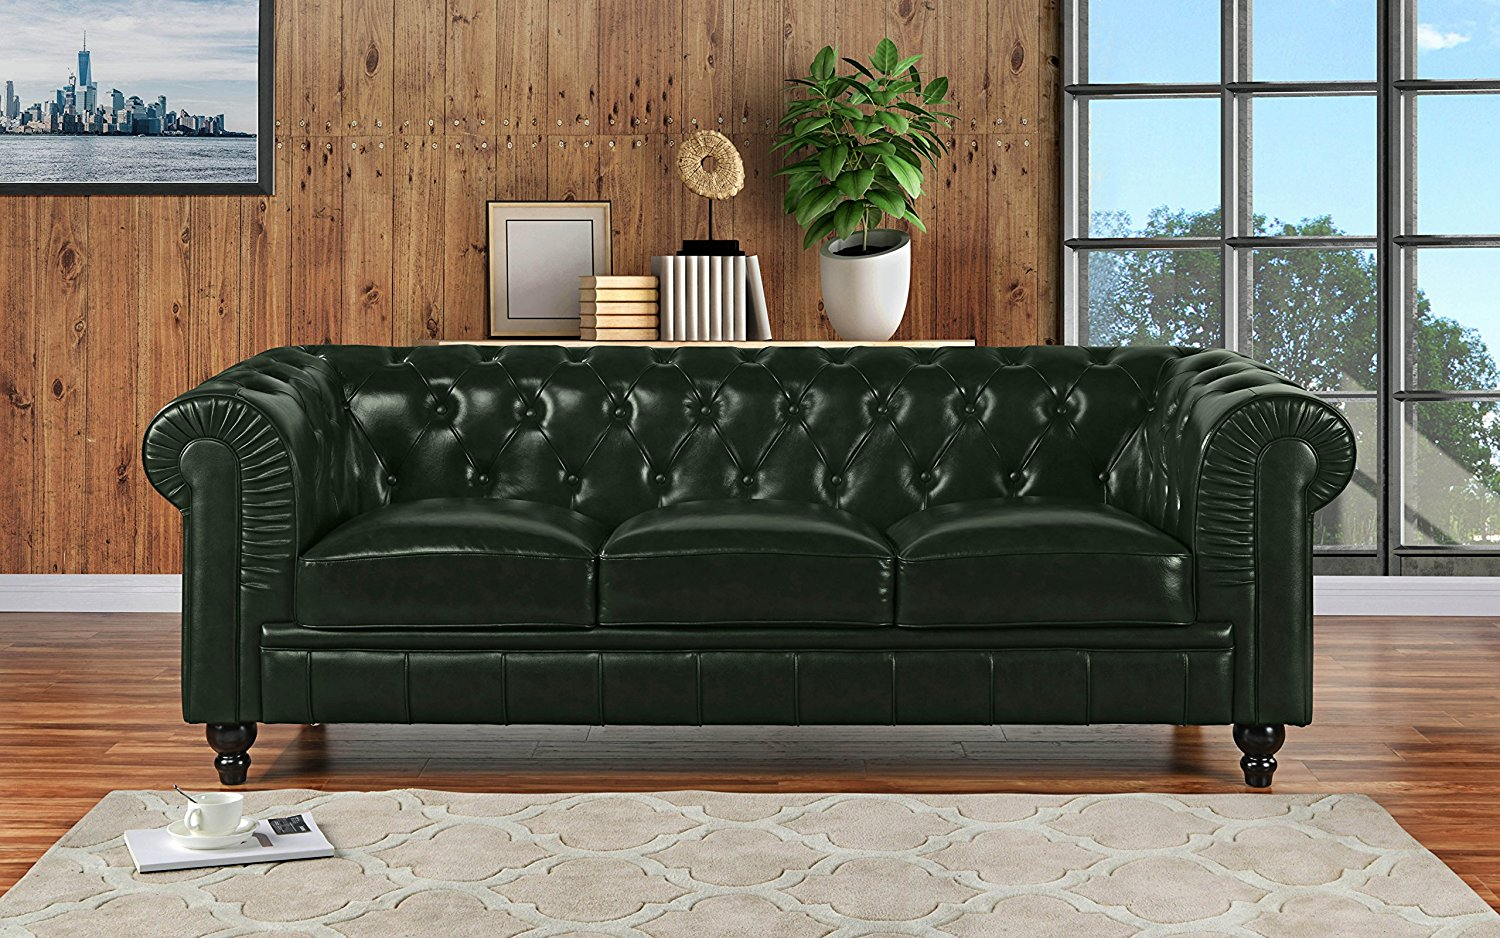 Get Quotations Clic Scroll Arm Real Leather Chesterfield Sofa Green